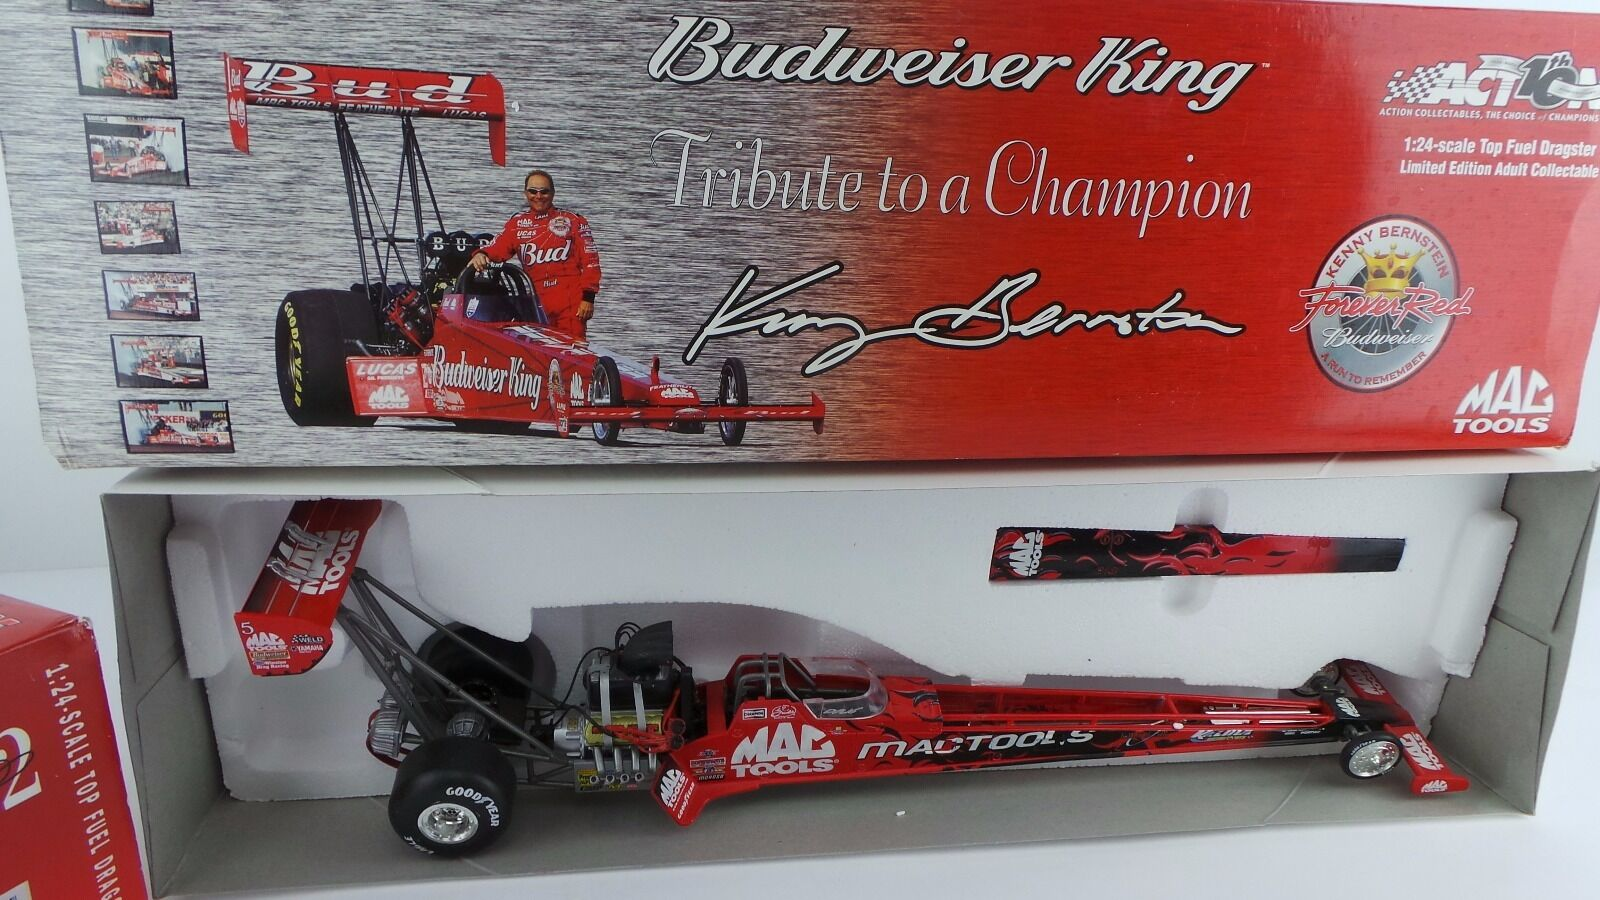 Kenny Bernstein diecast Mac tools action tribute to a champion budweiser 1 24